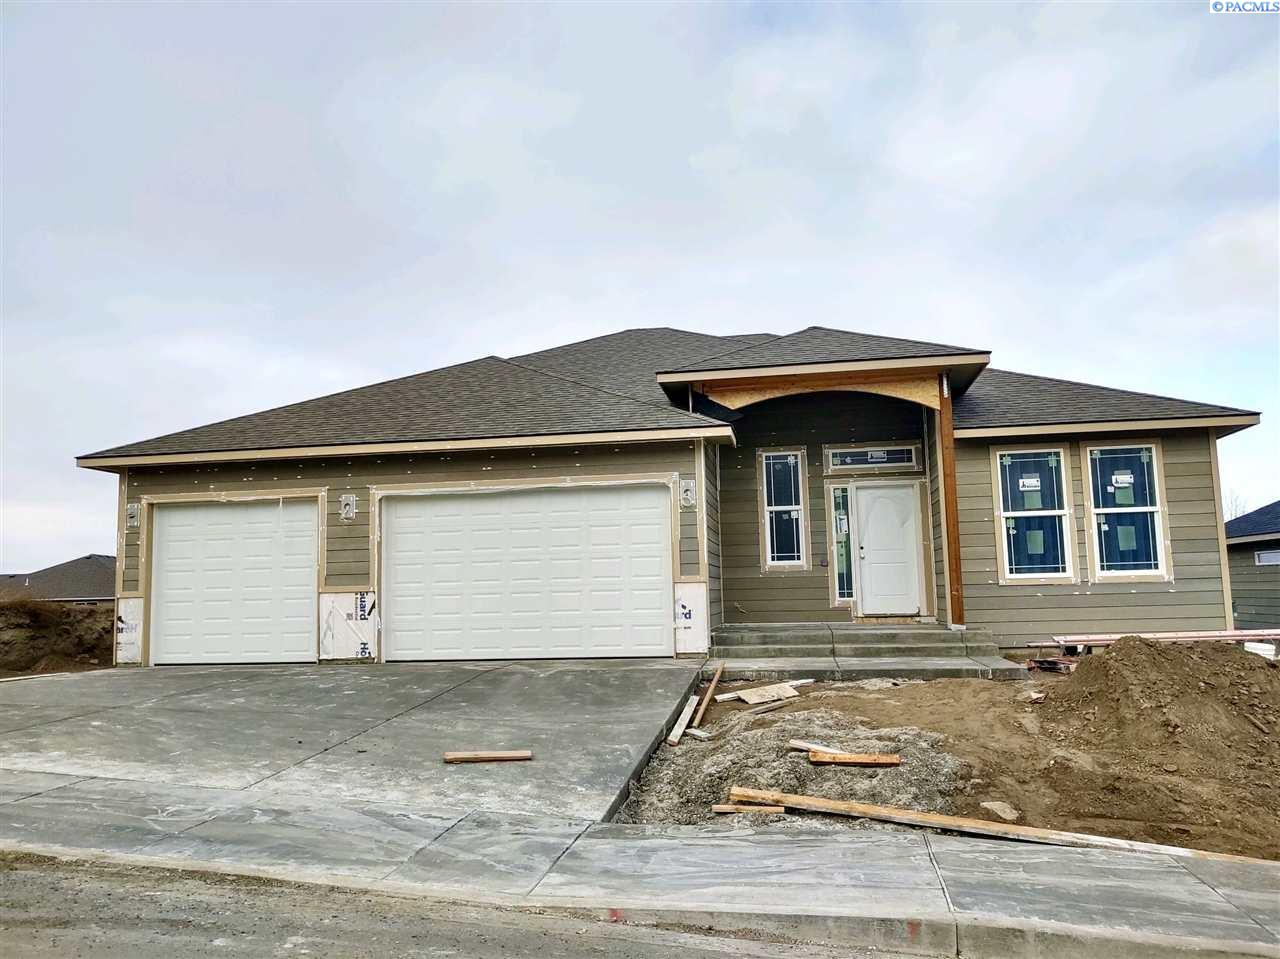 Single Family Homes for Sale at 2652 W 44th Place Kennewick, Washington 99337 United States